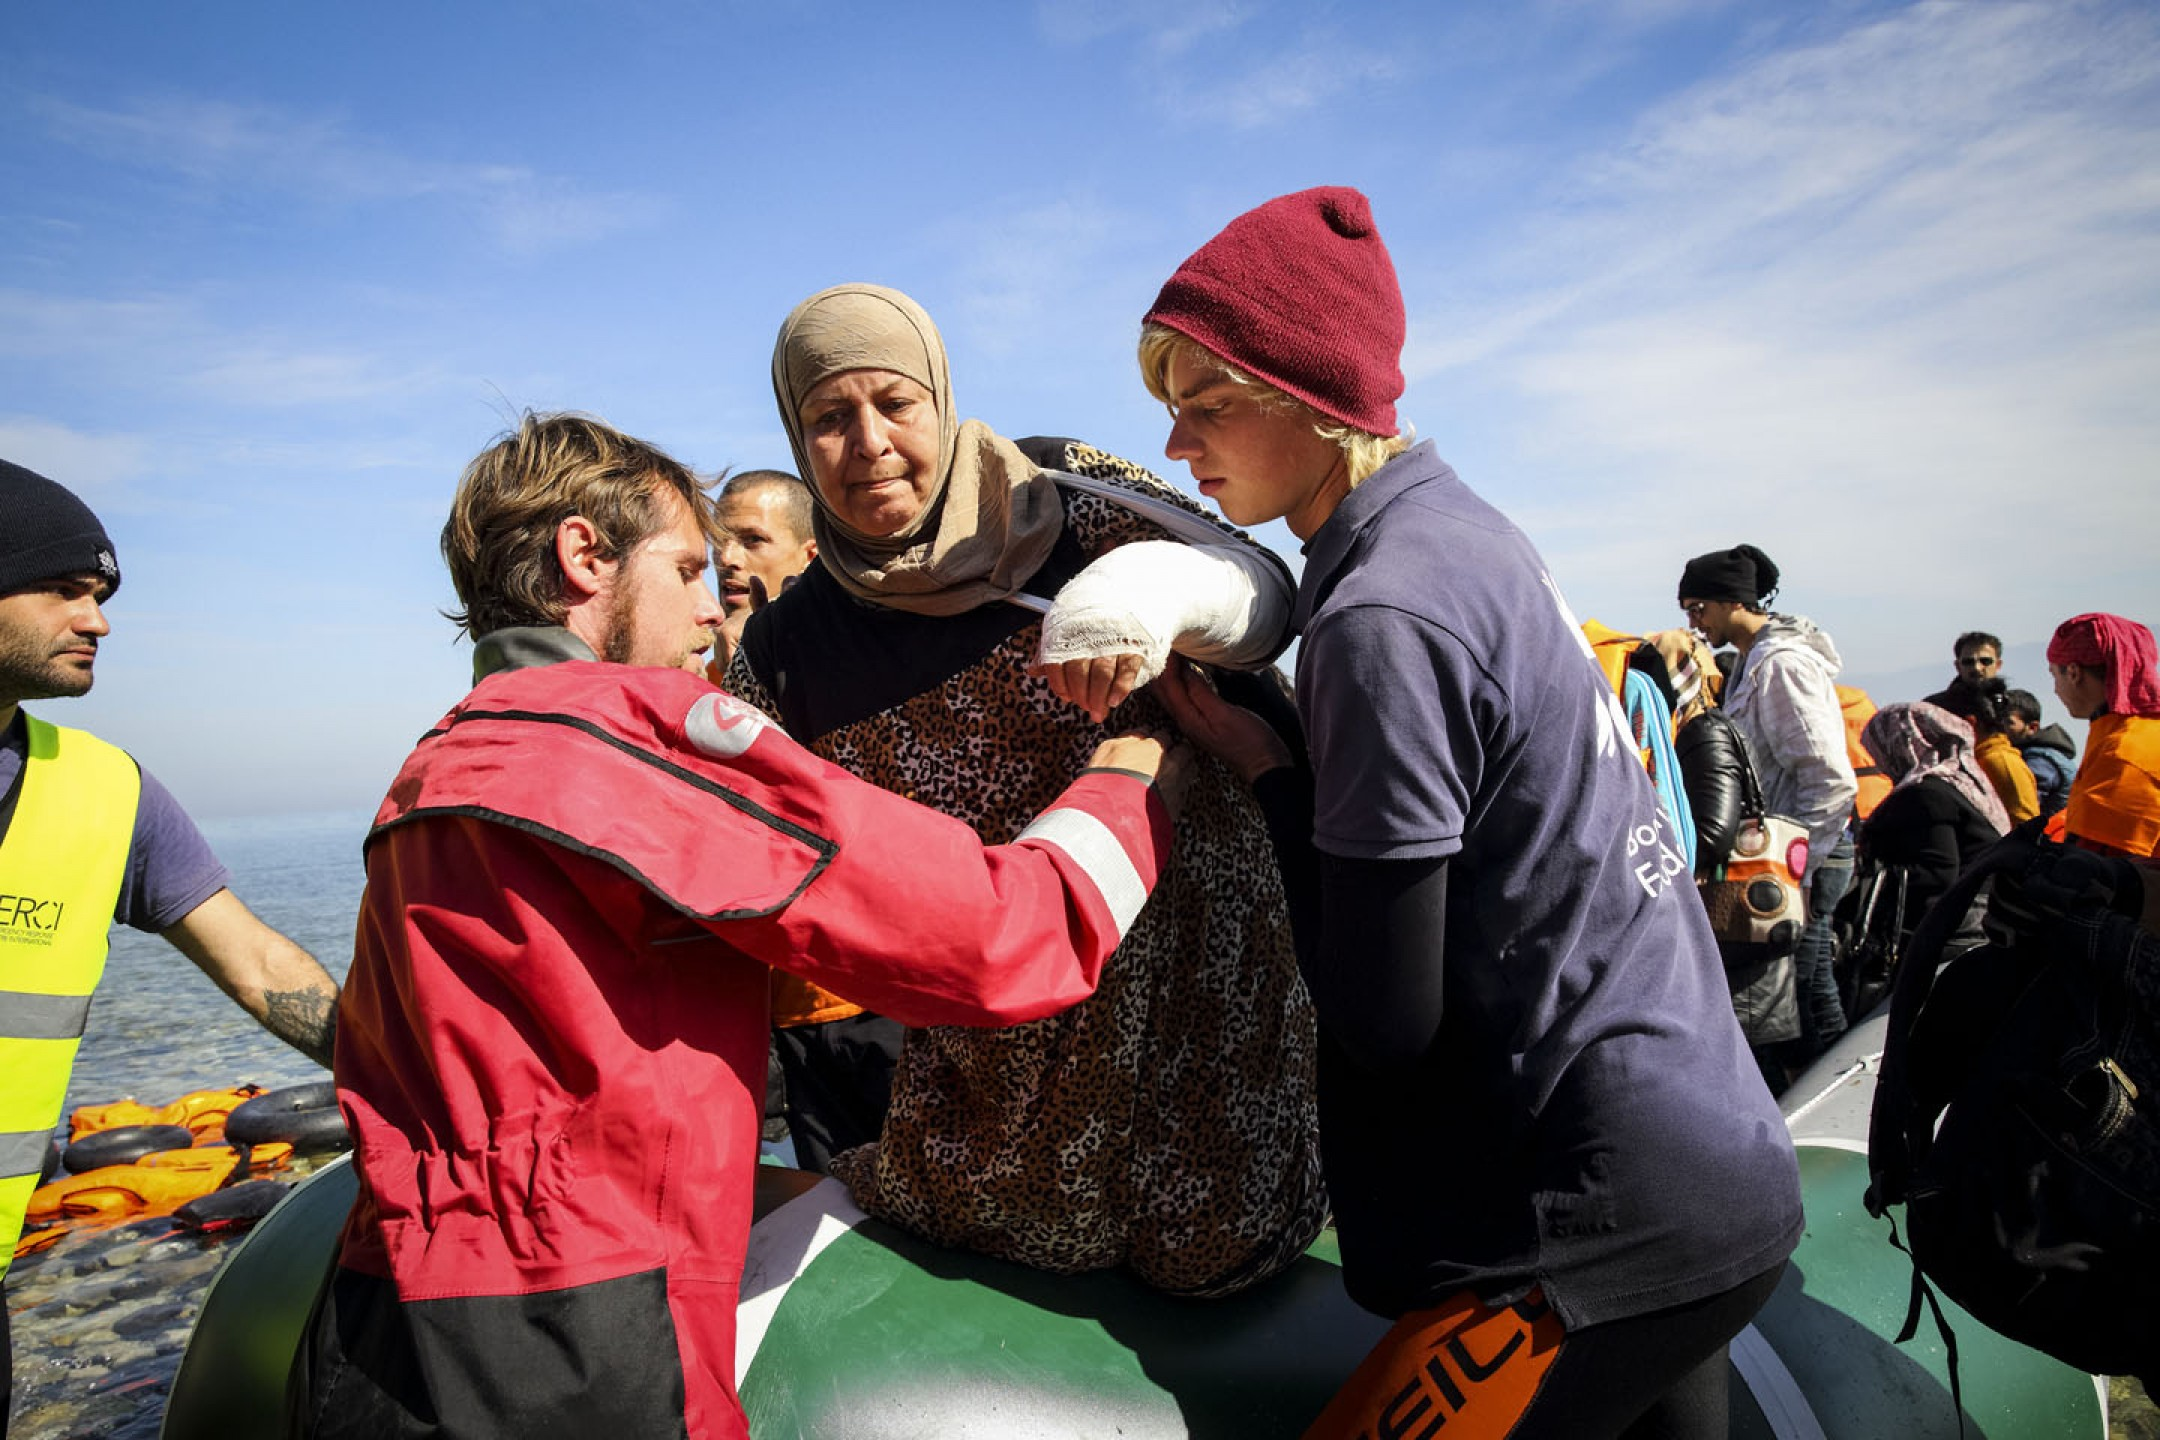 The Refugee Crisis in Greece